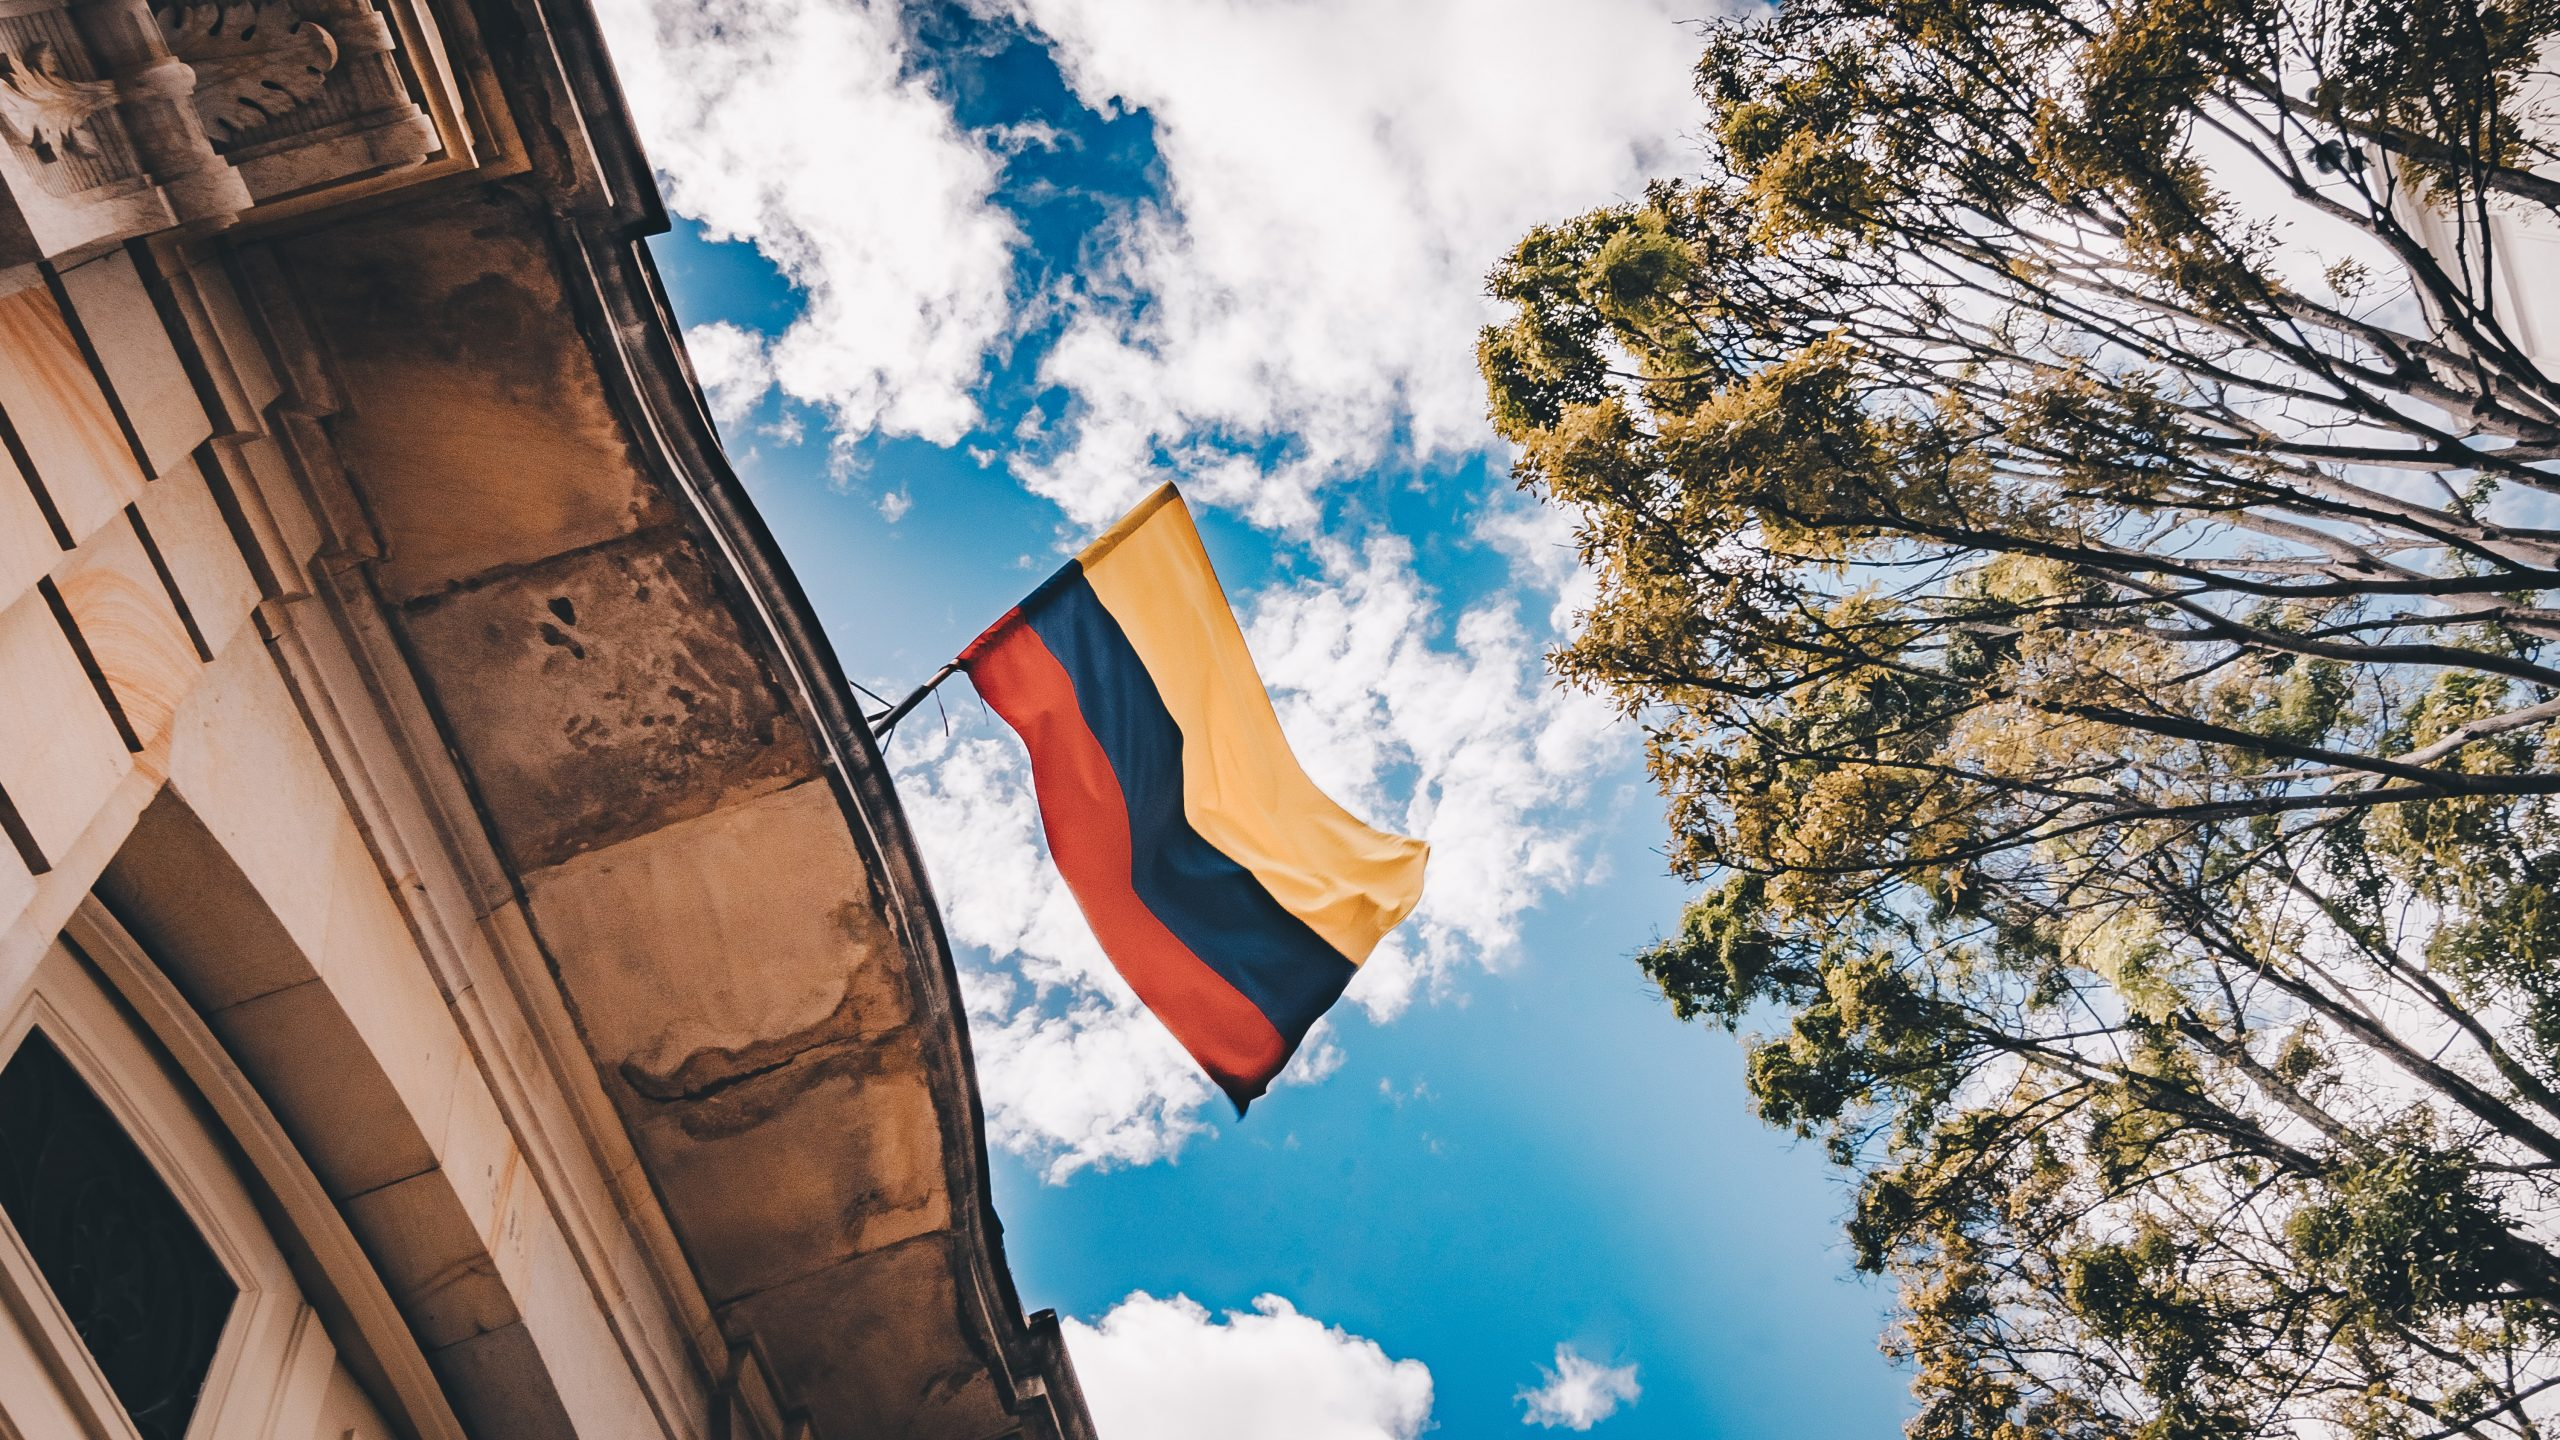 A Colombian flag atop a building from below